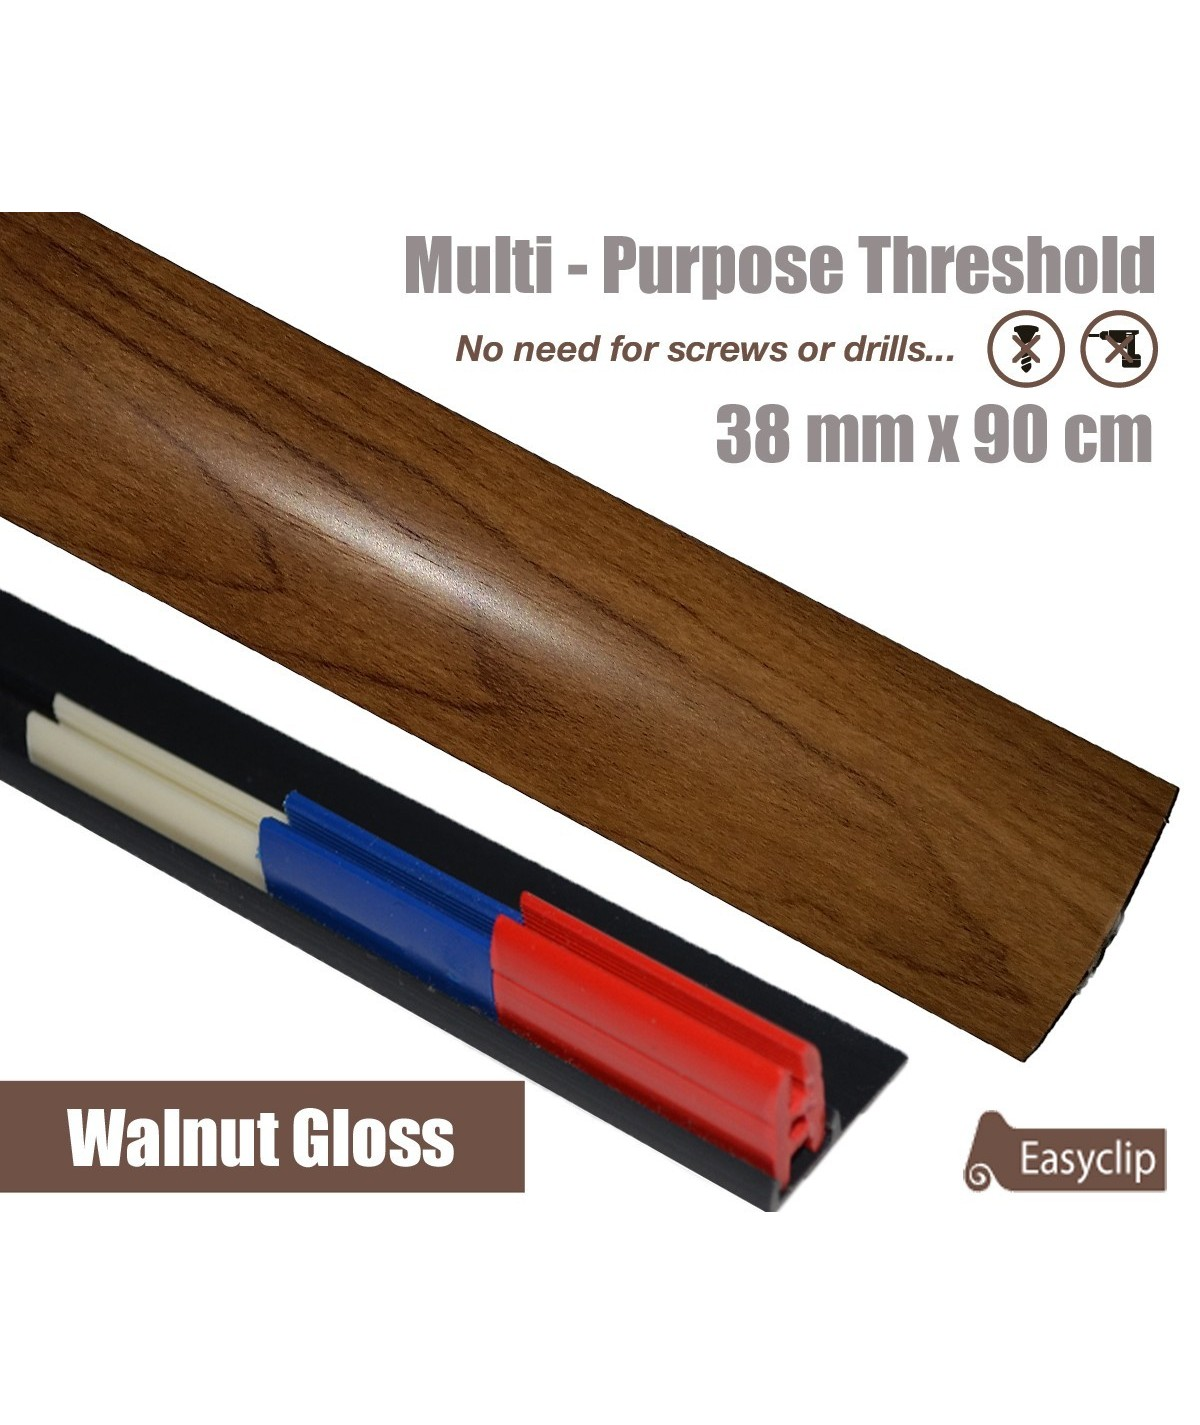 Walnut Gloss Laminated Transition Strip Threshold 38mm Pivots 90cm Multi-Purpose